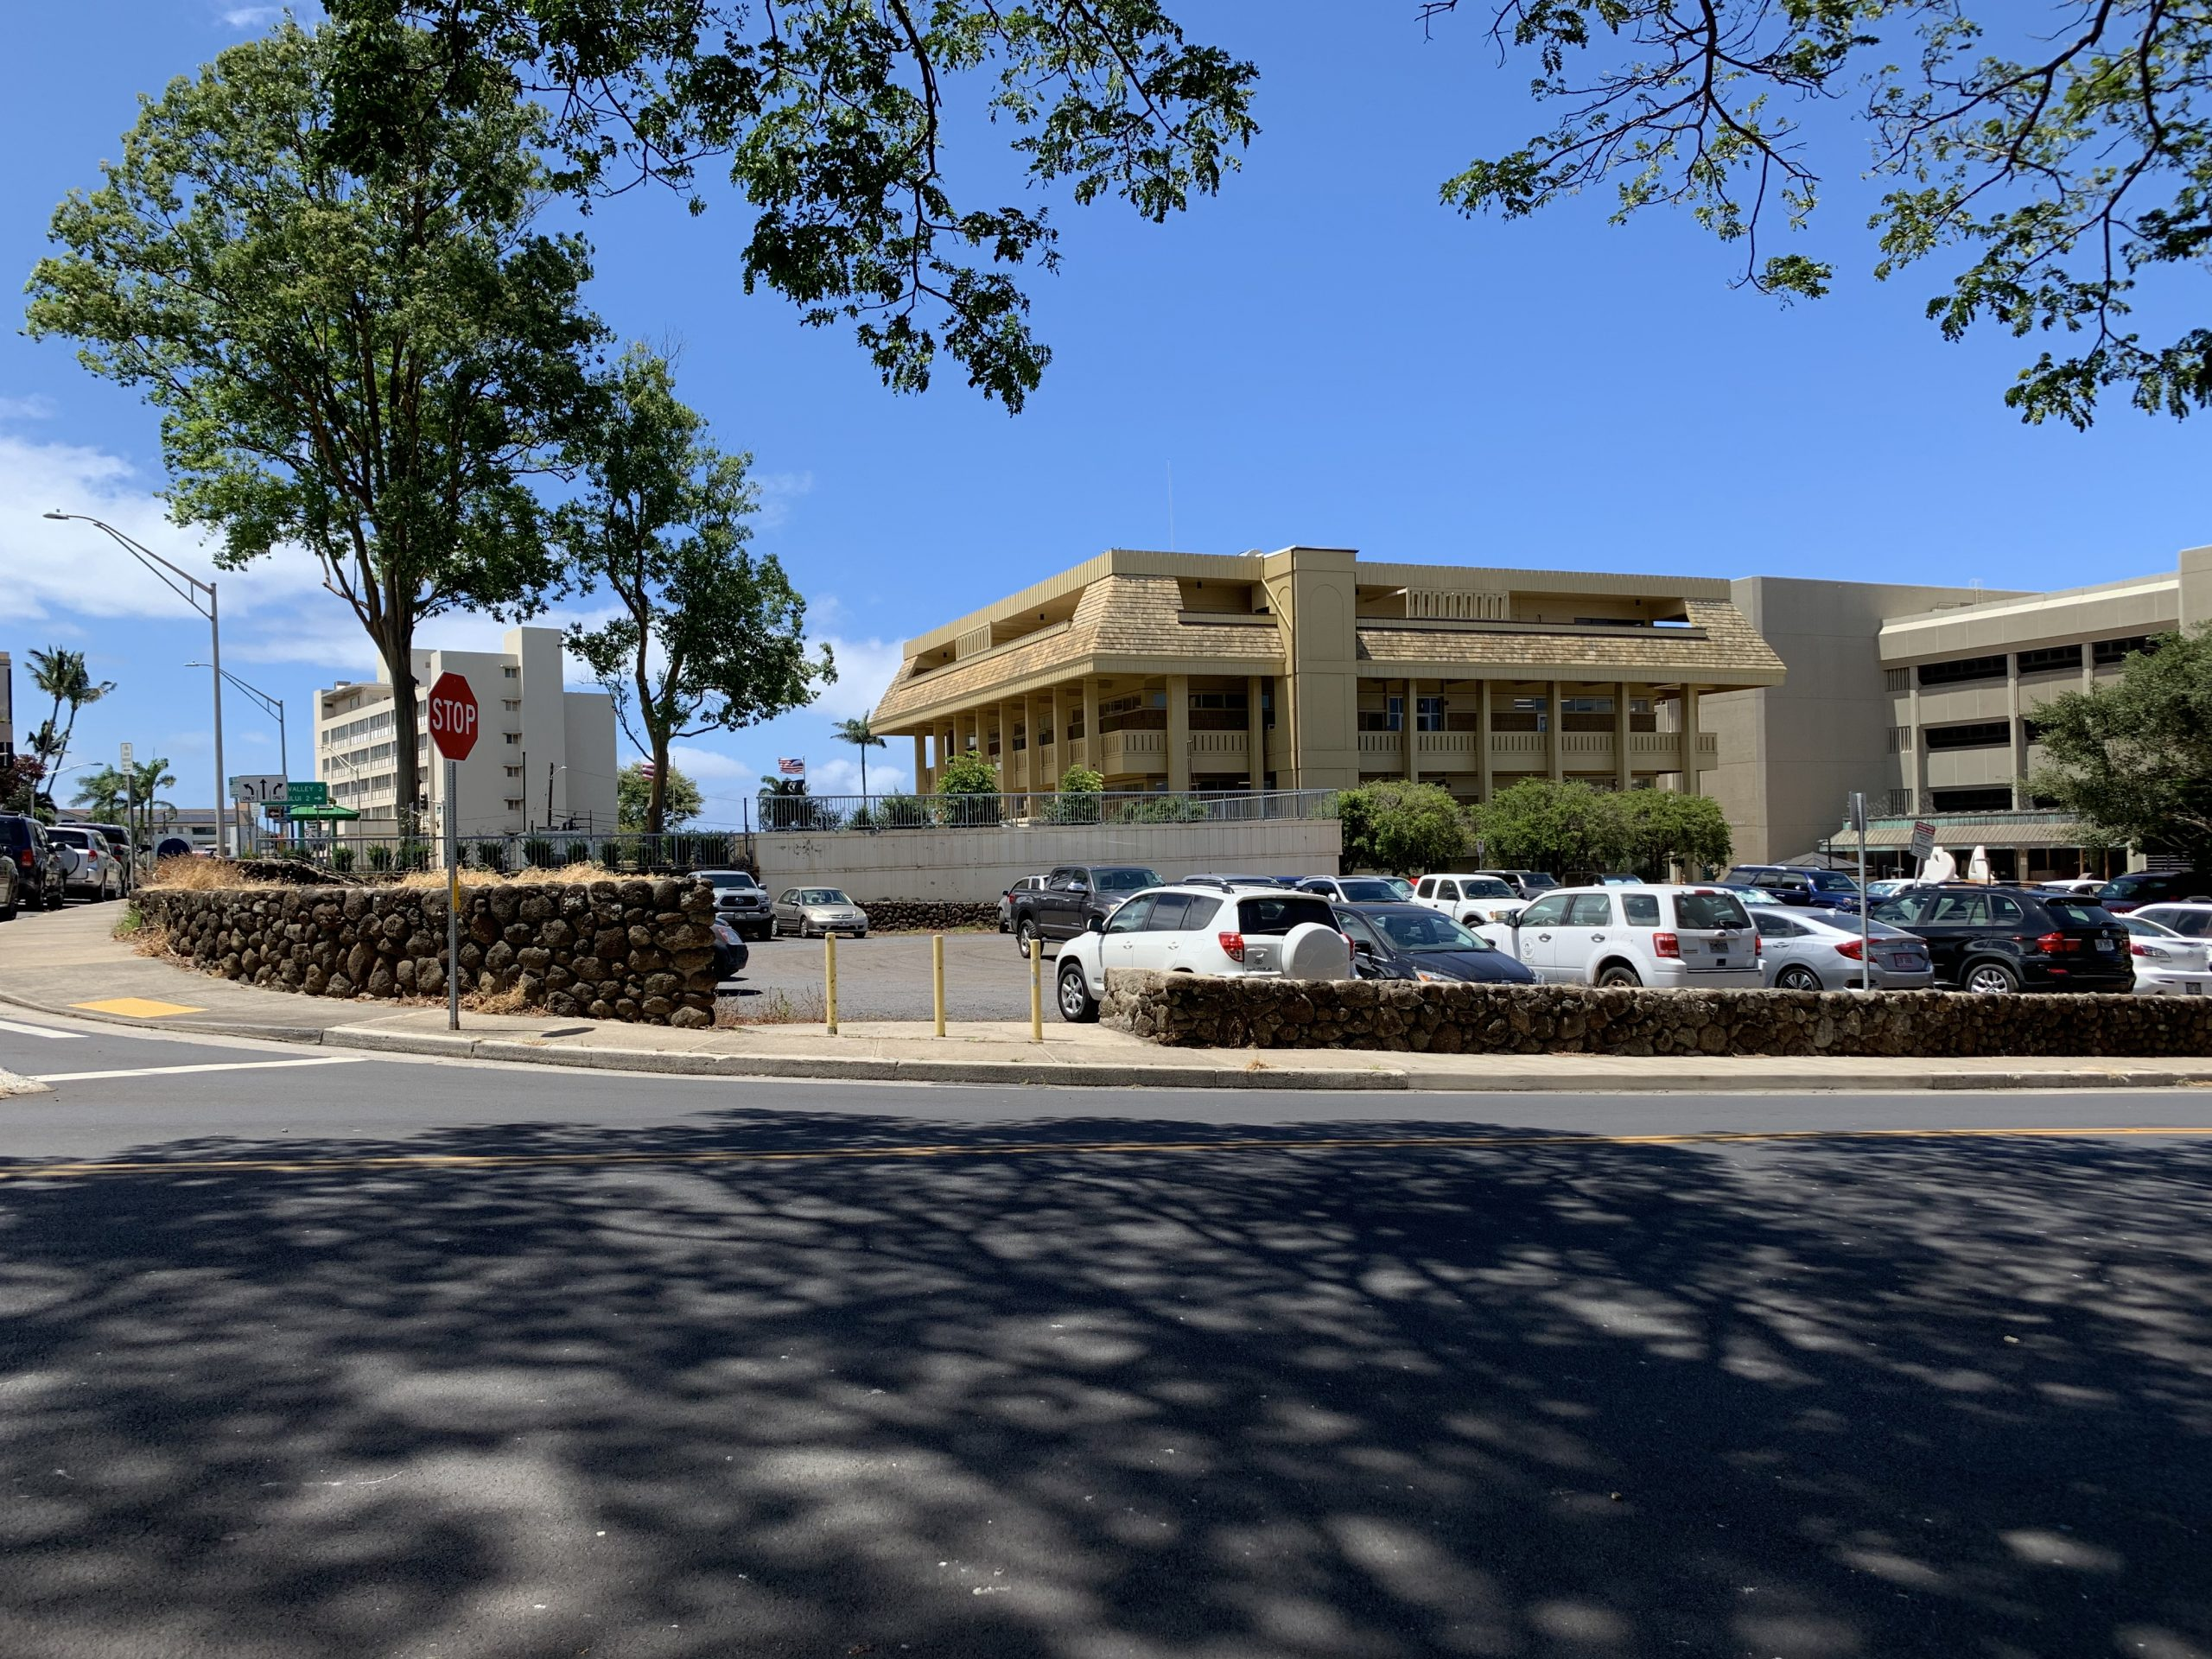 Multi-Level State Office Building Proposed for Construction on Grounds of Old Wailuku Post Office Site